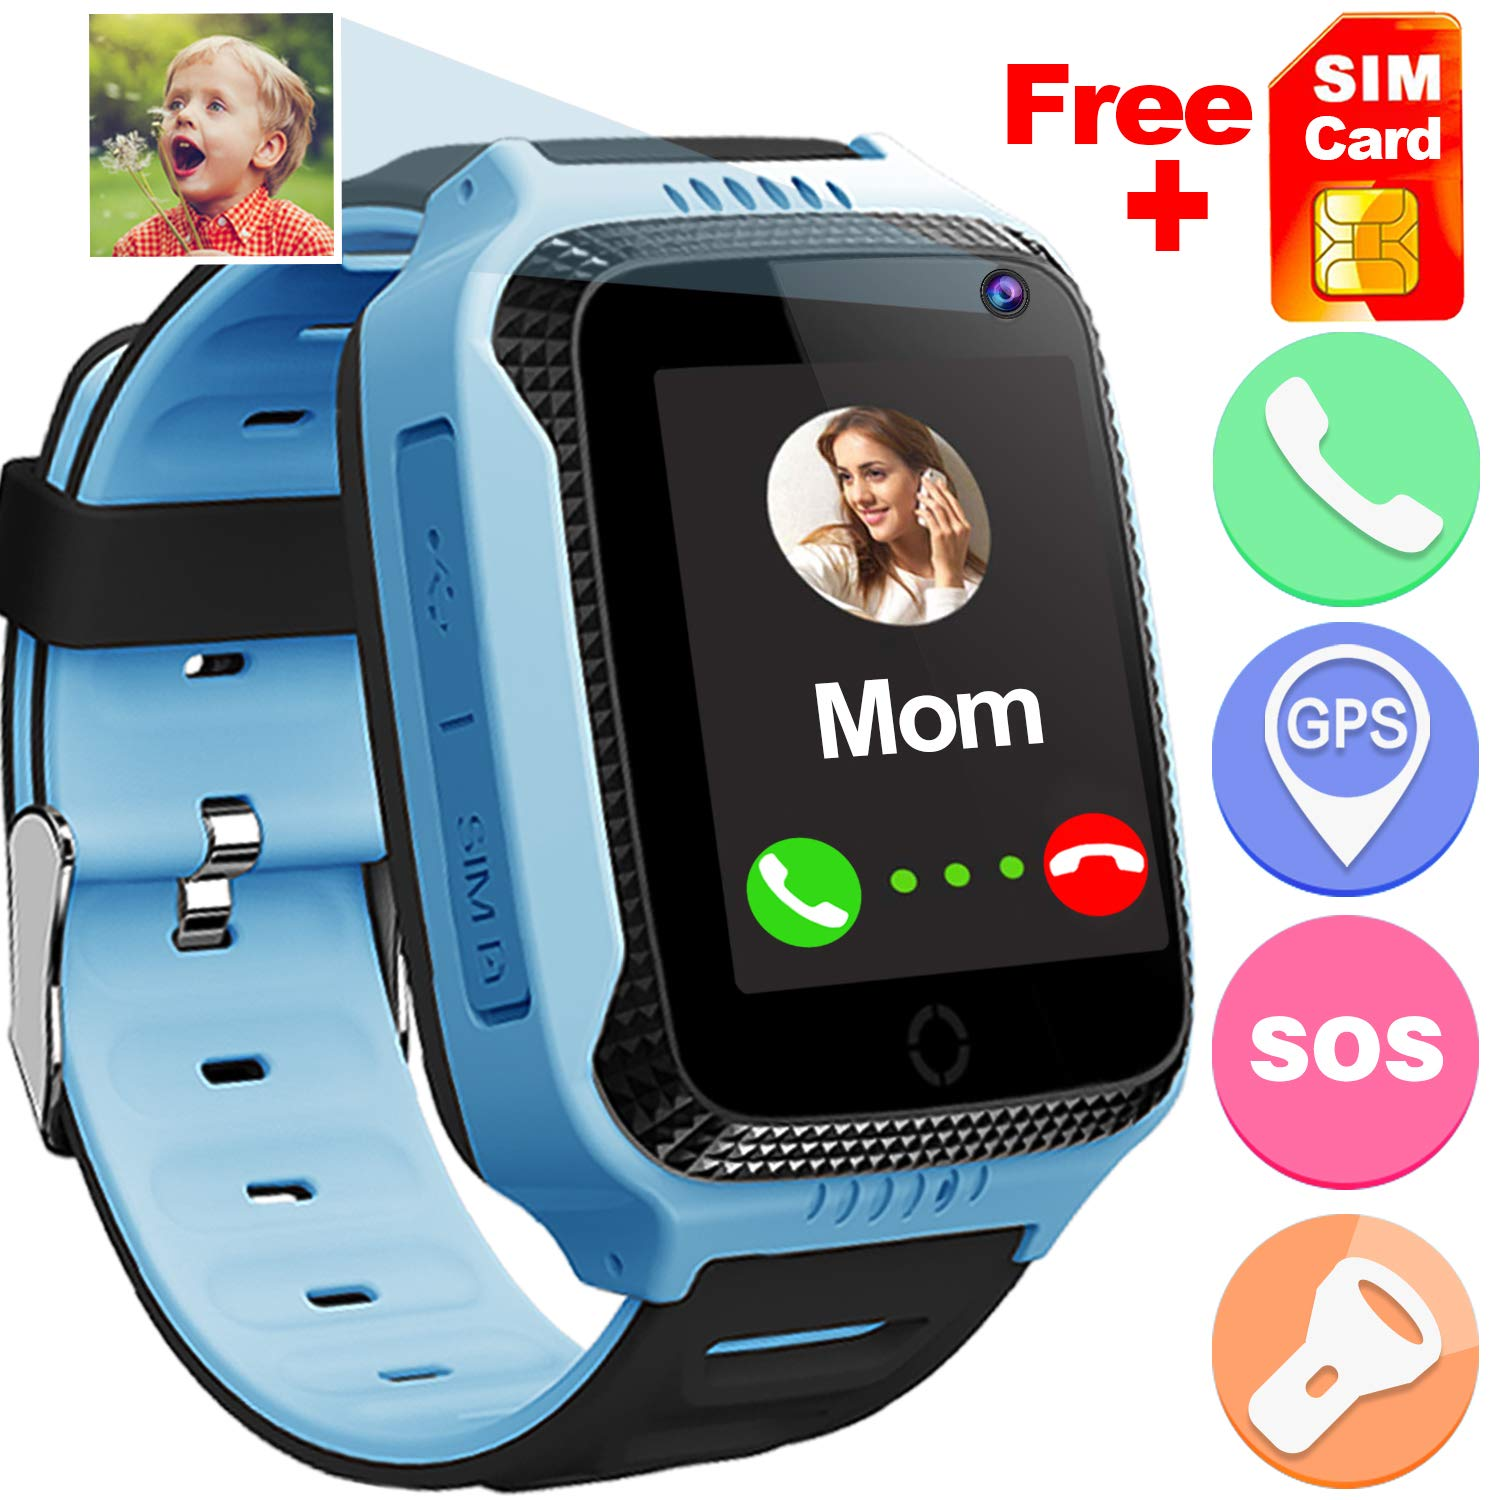 Qiwoo Kids Smart Watch Phone GPS Tracker for Girls Boys Fitness Tracker Pedometer Watches with Anti Lost SOS Alarm Clock Touch Camera Games Phone Watch Birthday Gifts